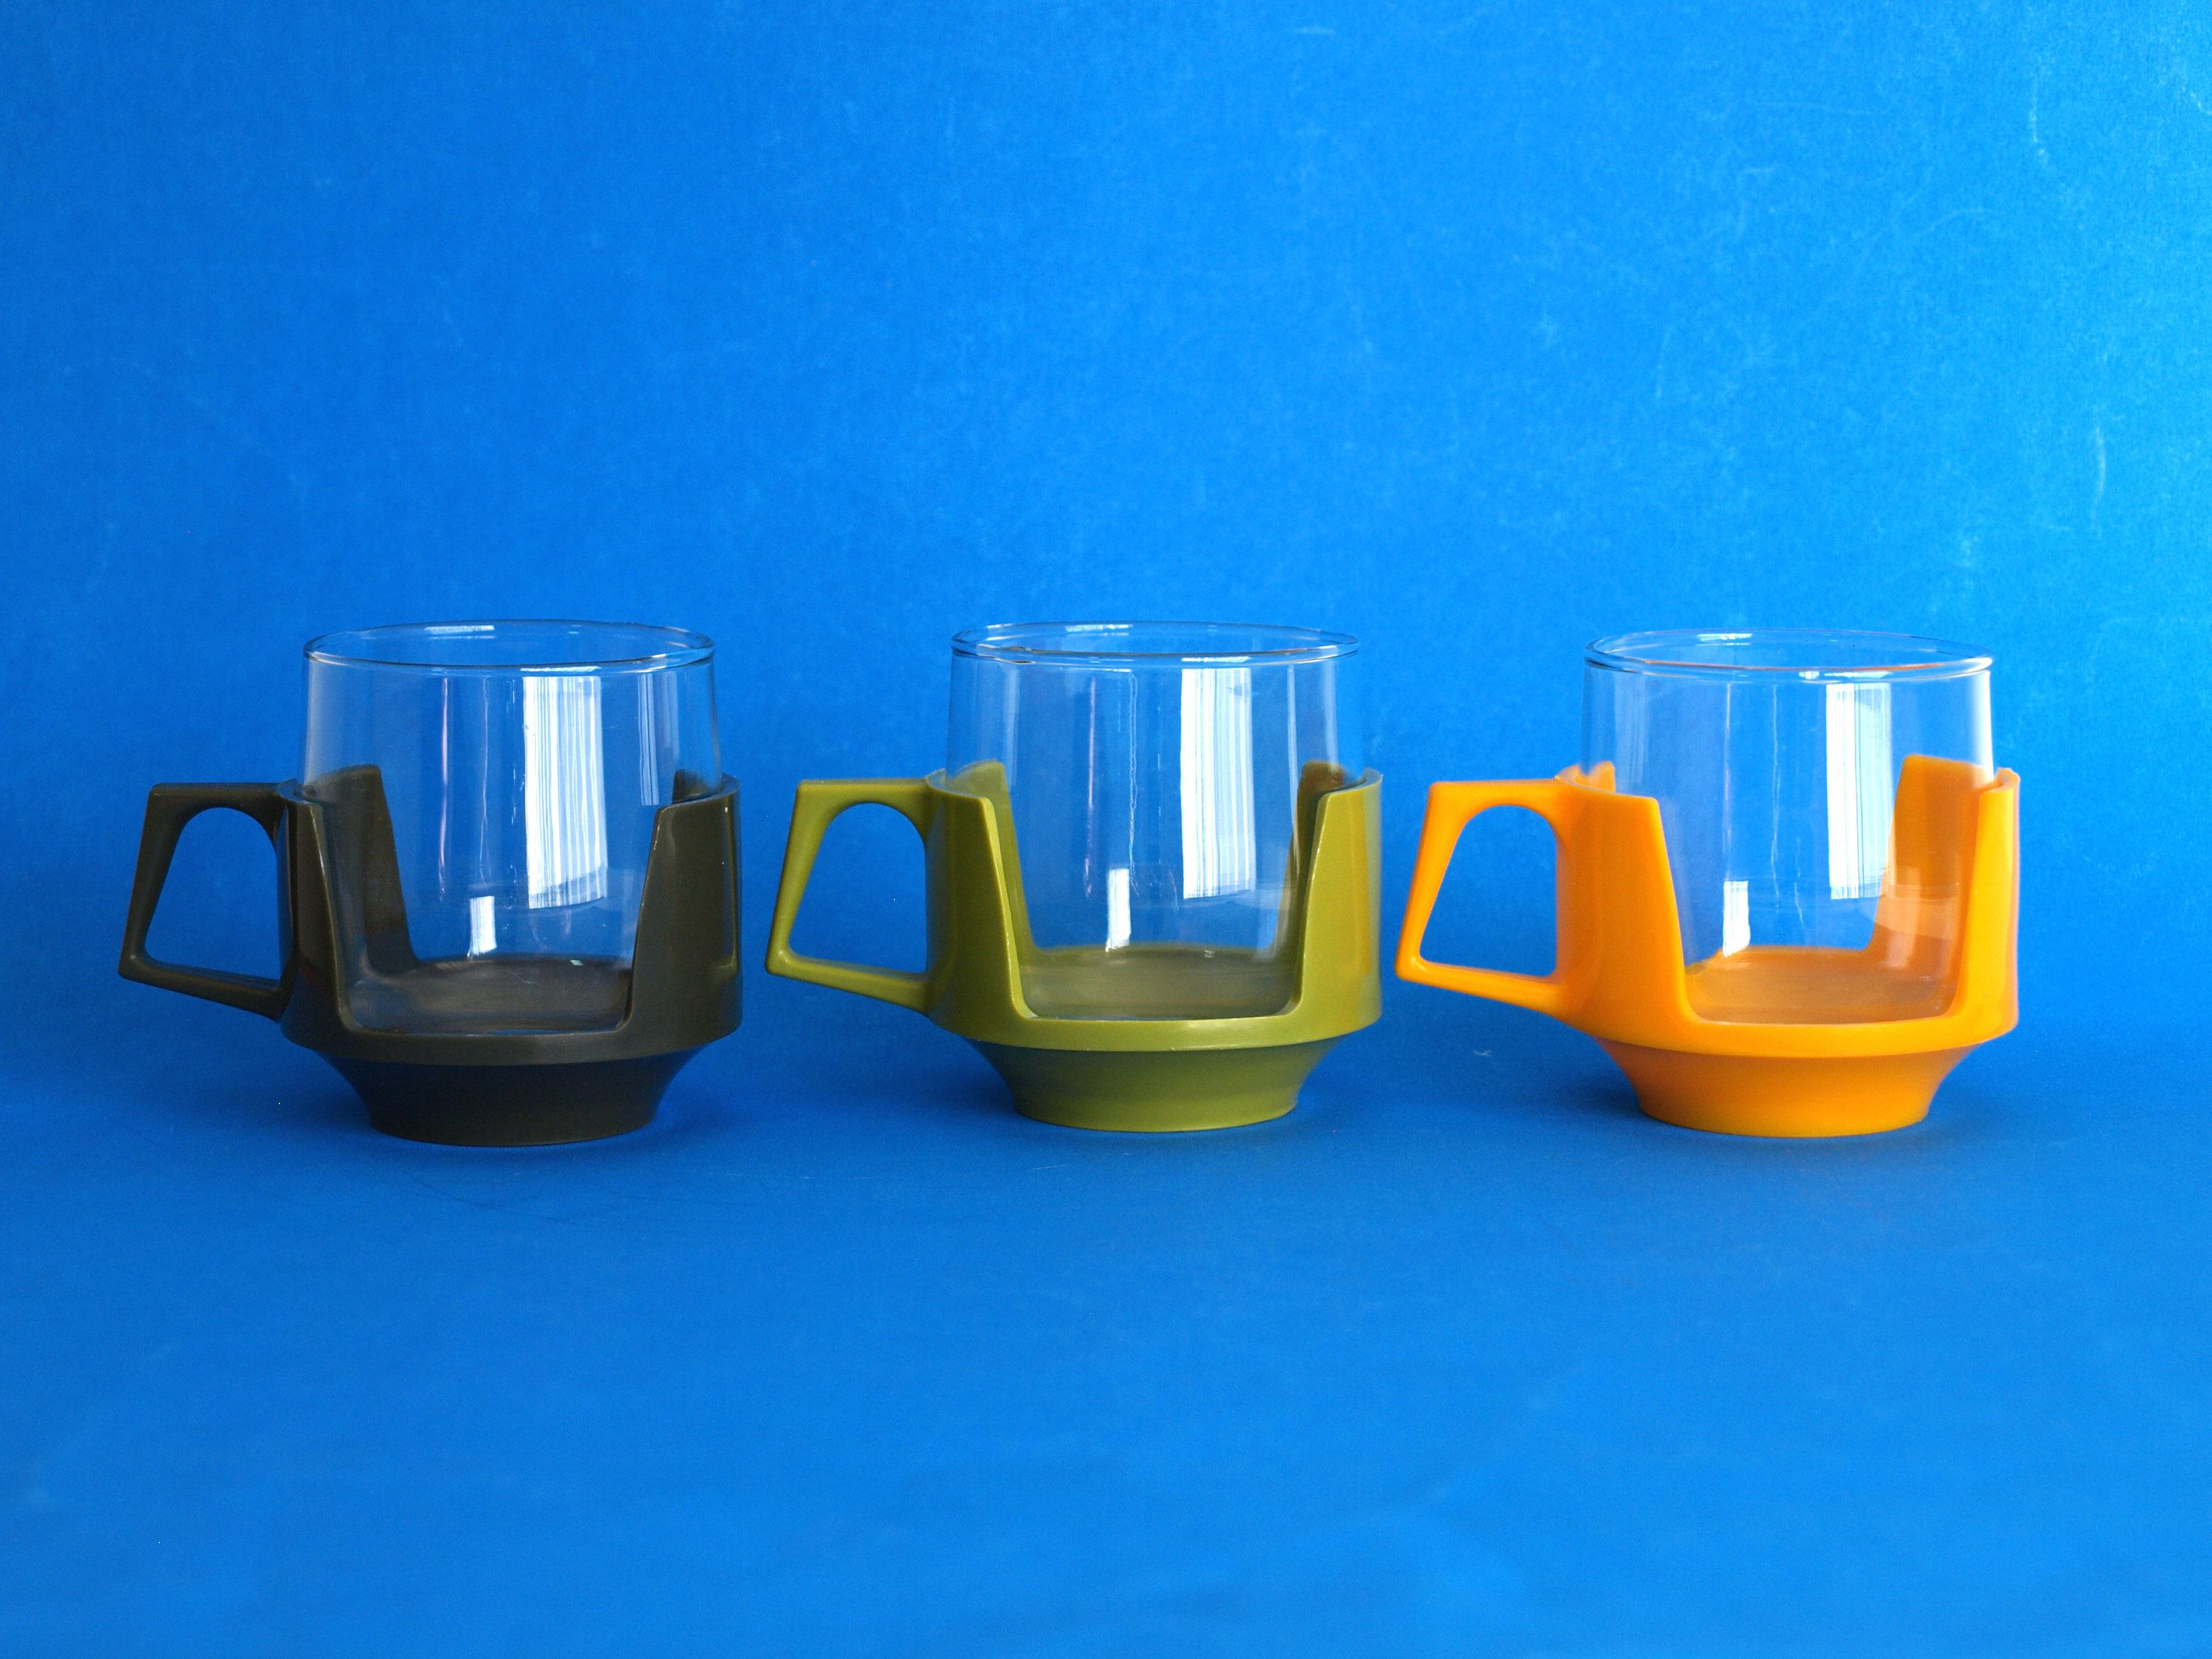 Fullsize Of Retro Coffee Mugs